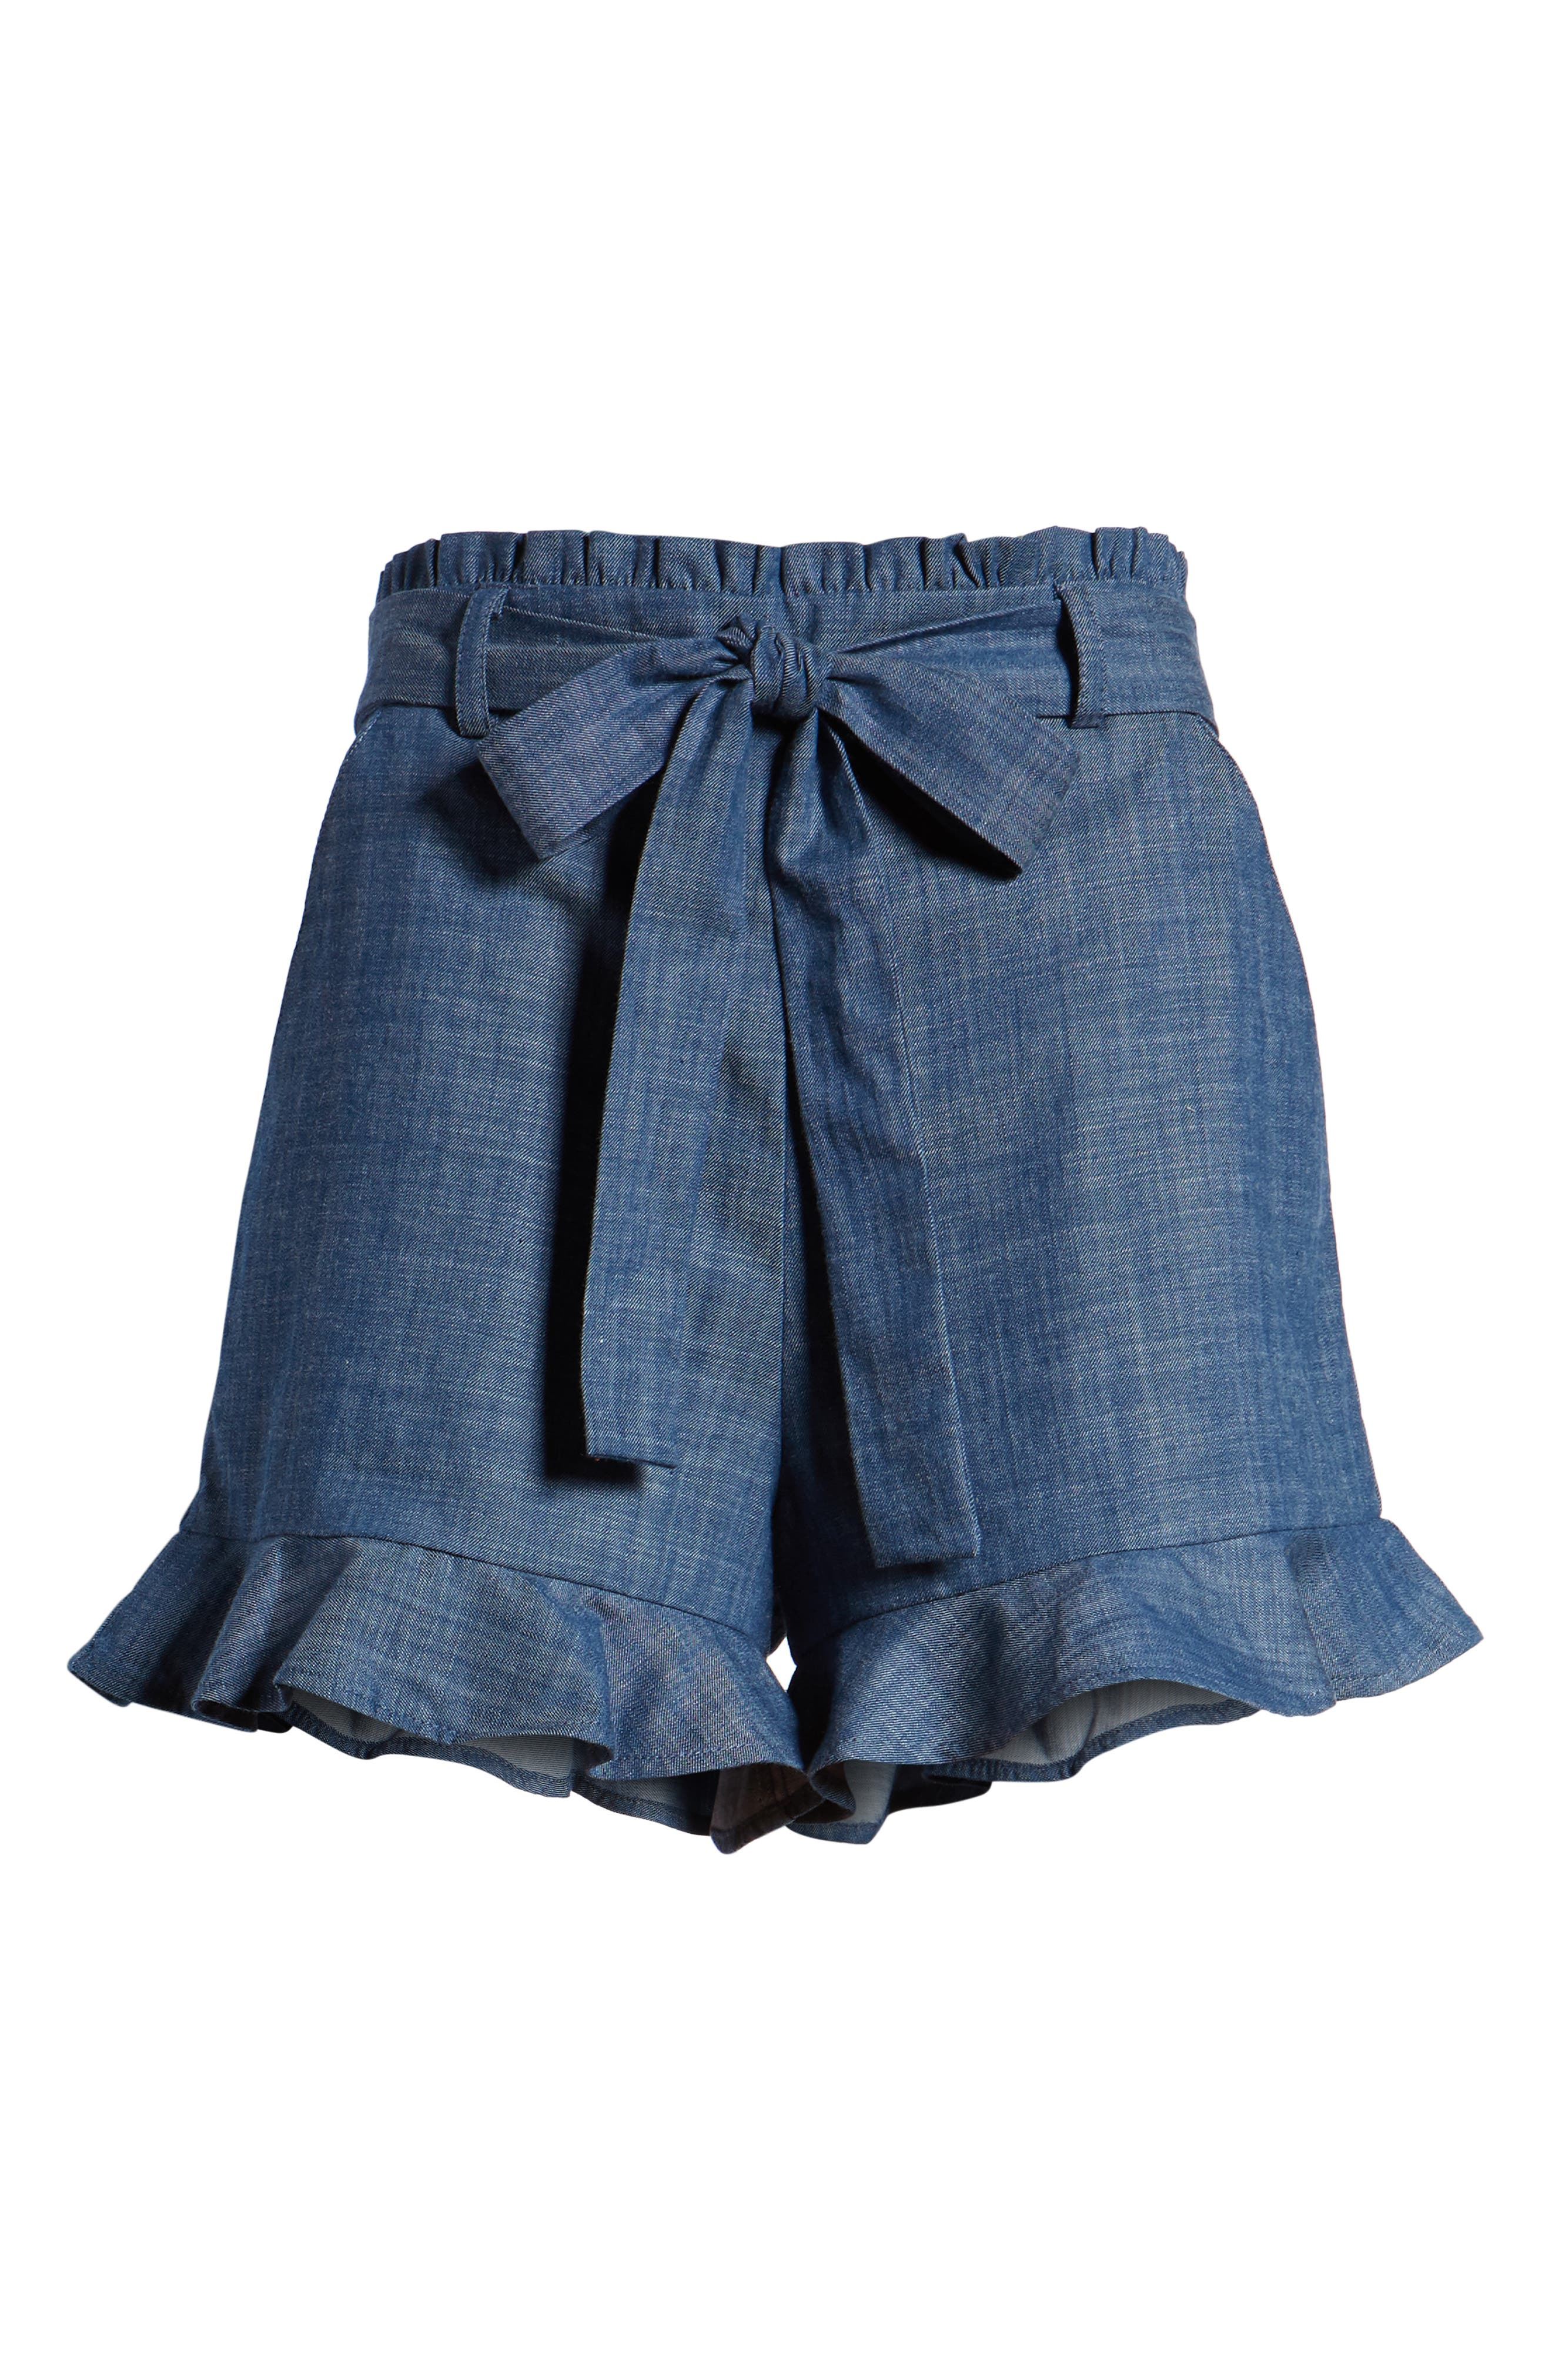 Tie Waist Chambray Shorts,                             Alternate thumbnail 7, color,                             450